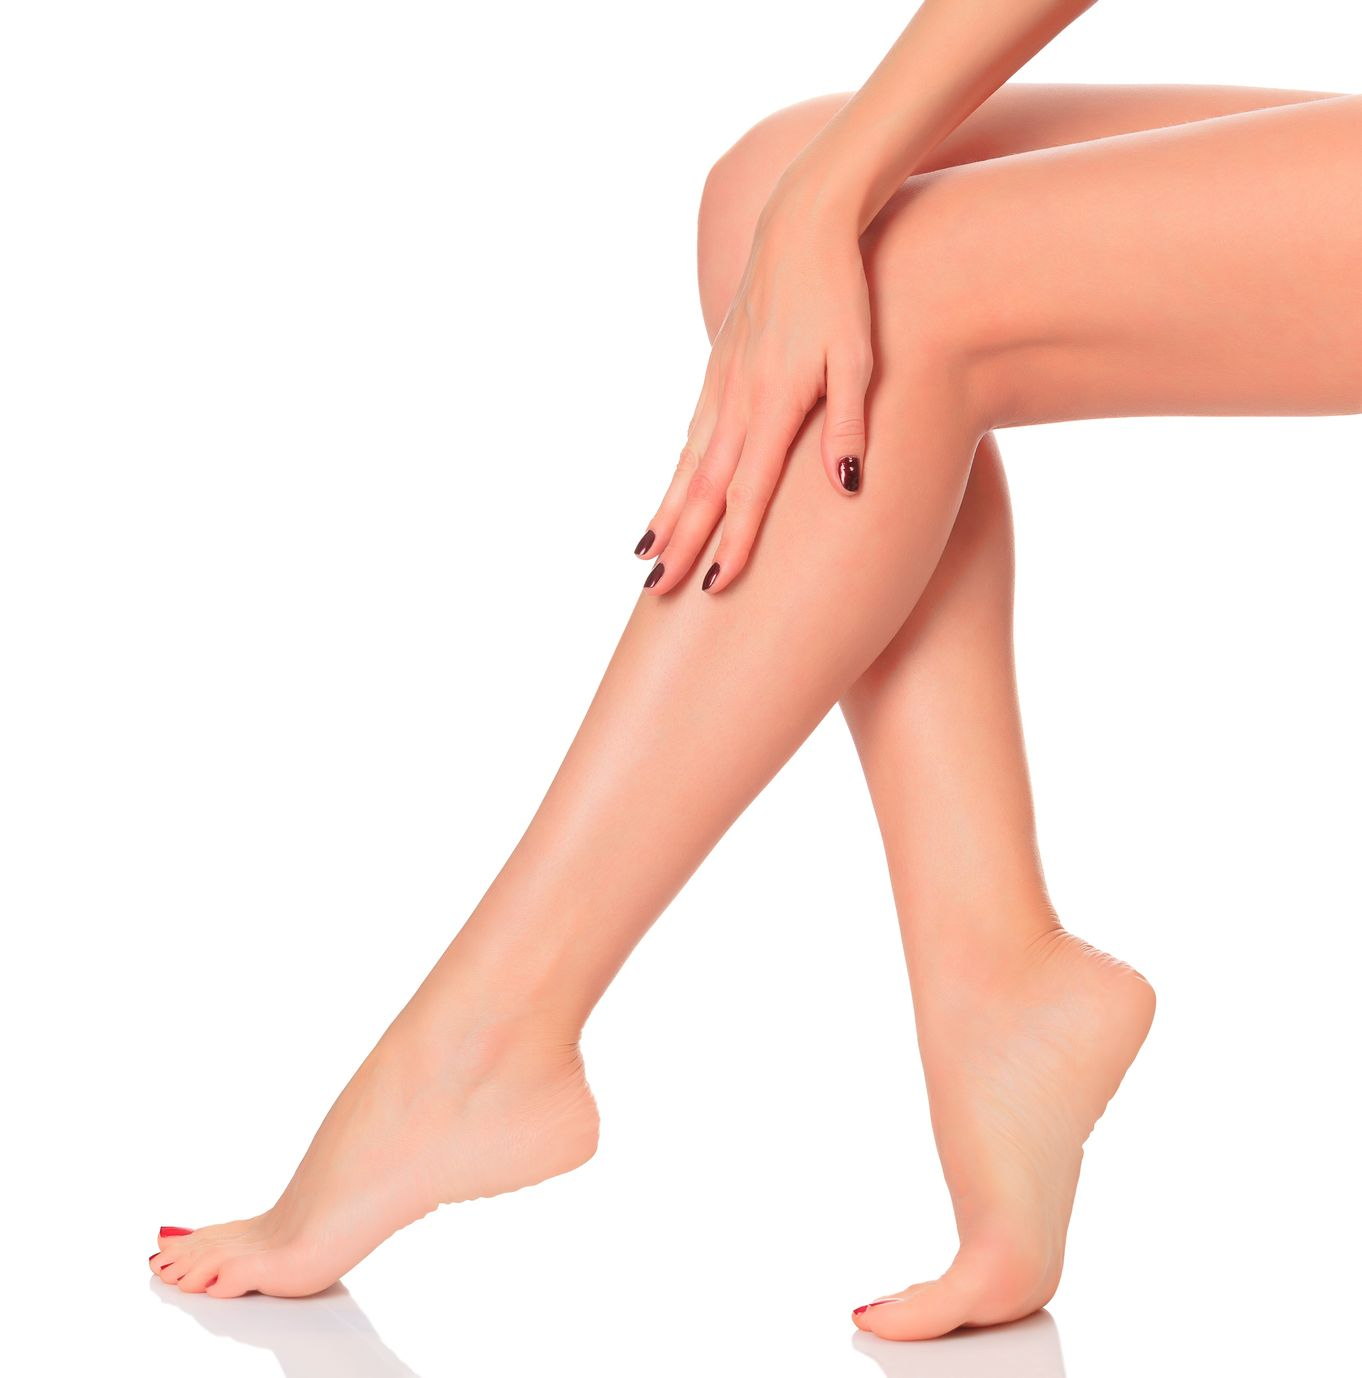 Why choose laser/light therapy for unwanted hair